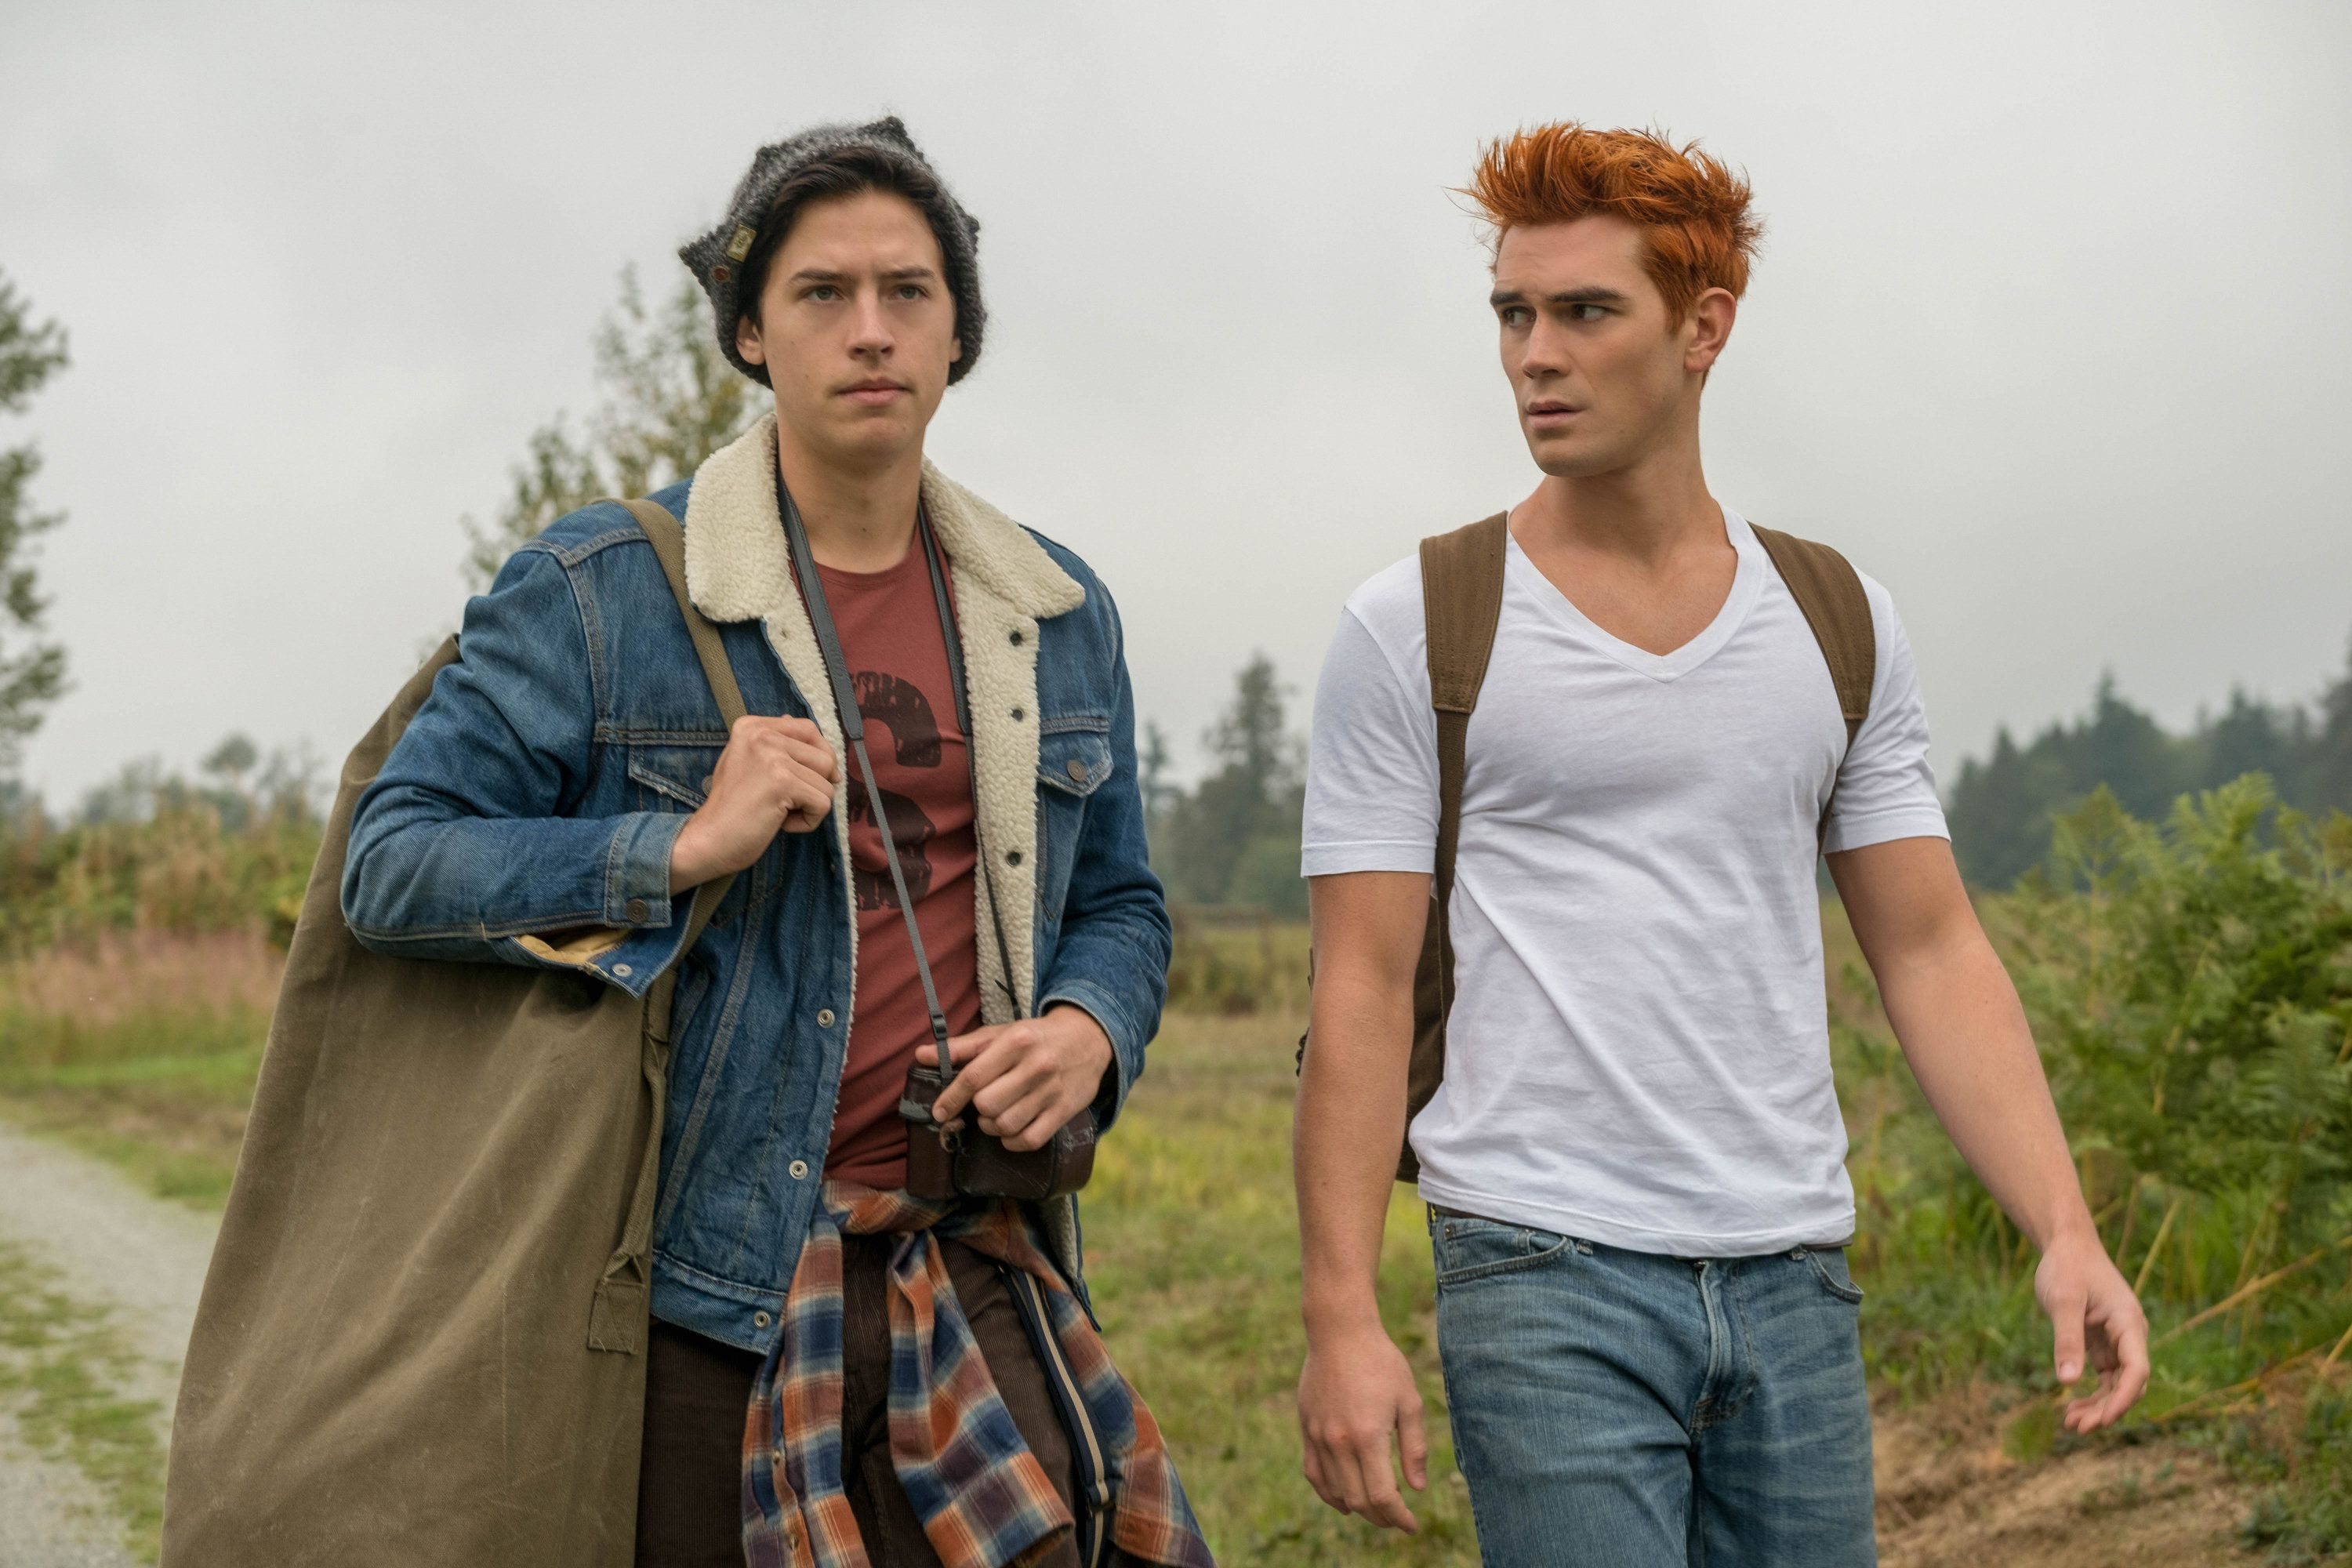 Jughead and Archie walking down a road